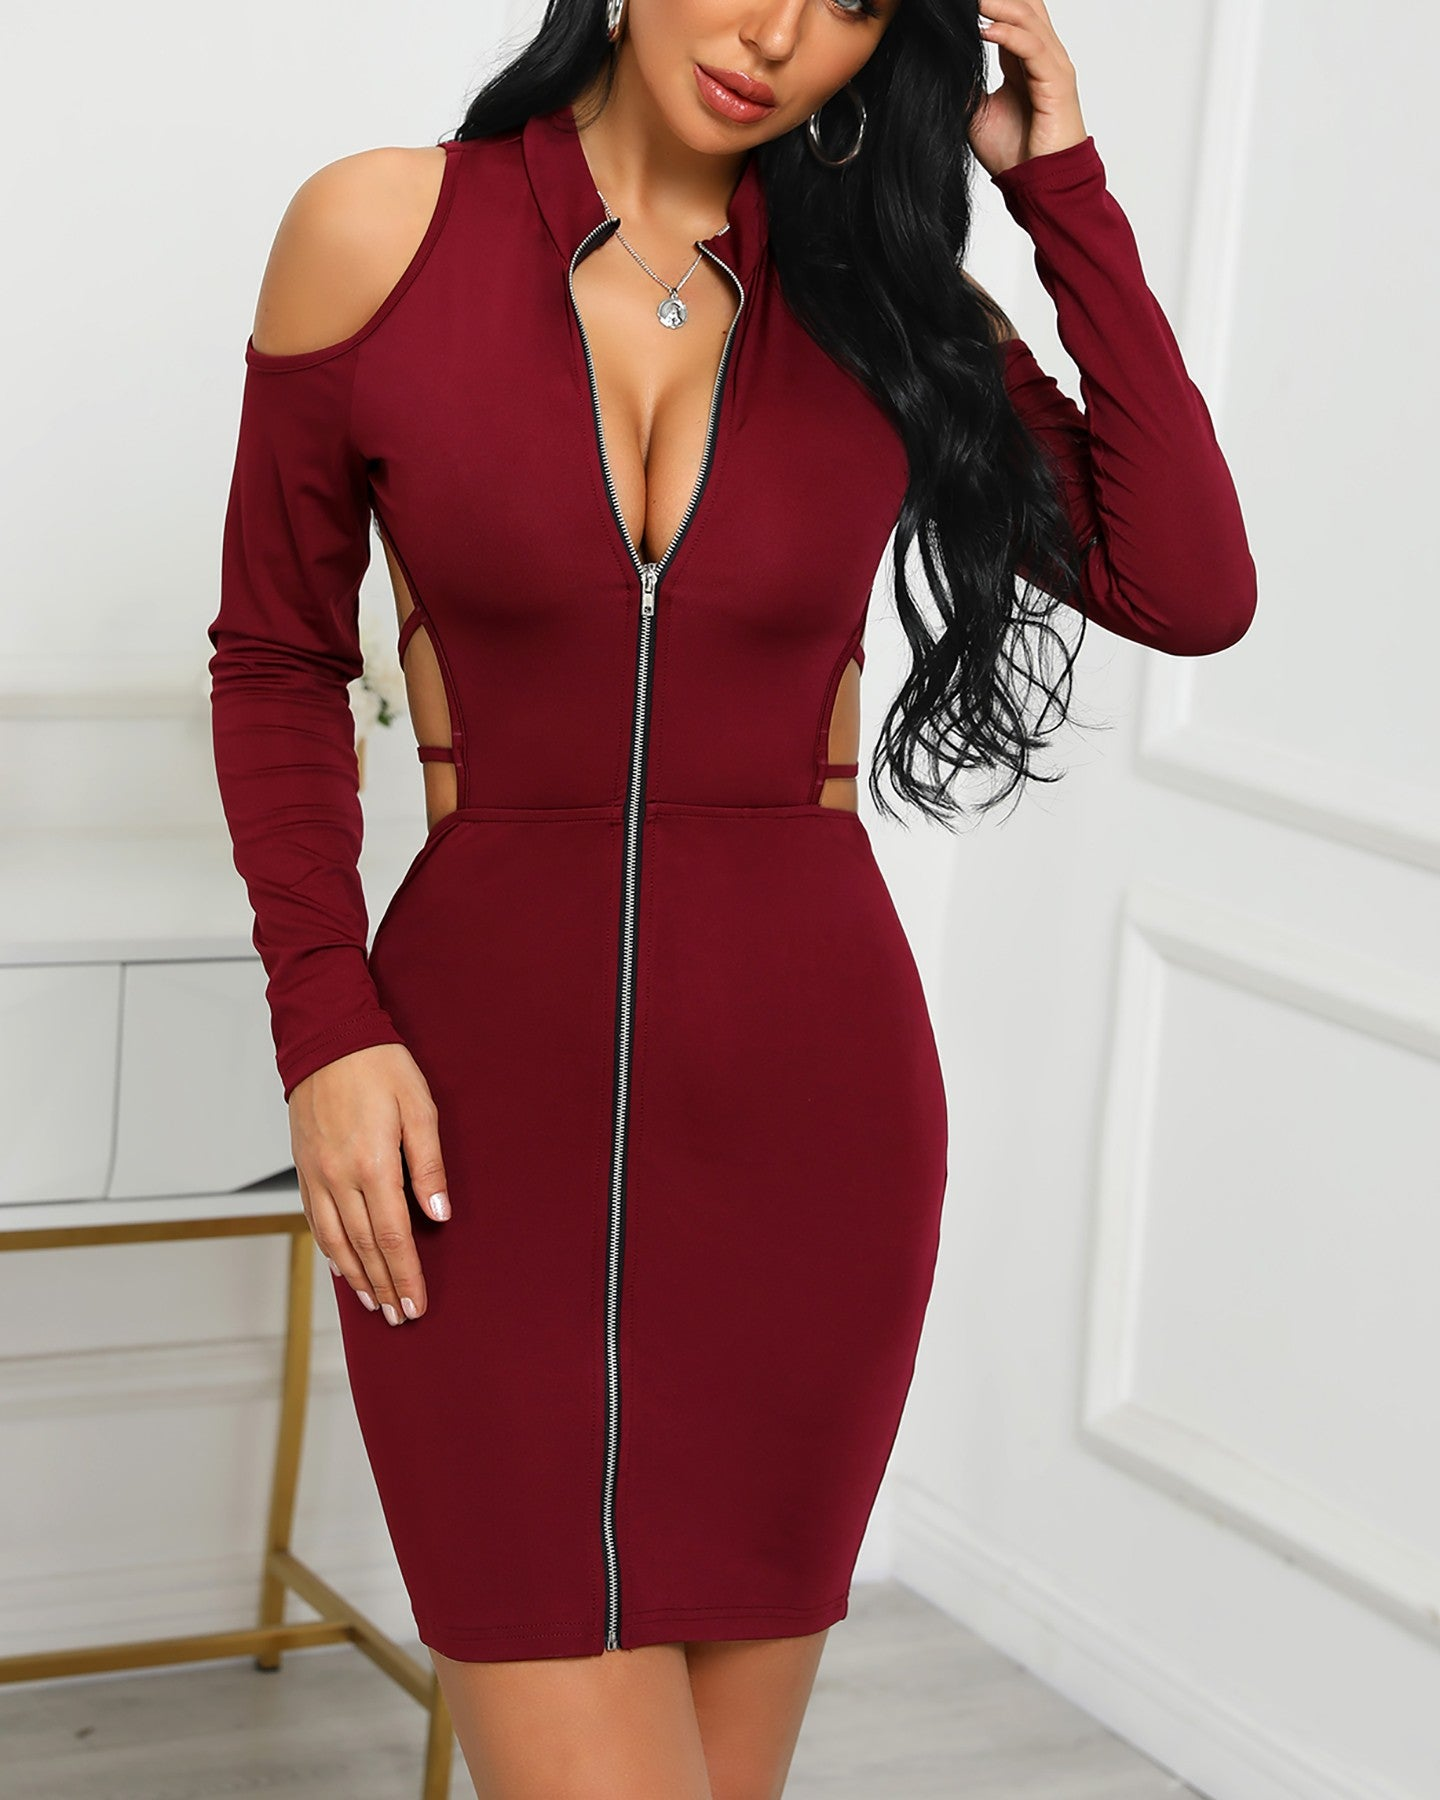 Lace-Up Back Zipper Design Bodycon Dress - DadHats2ow6ix